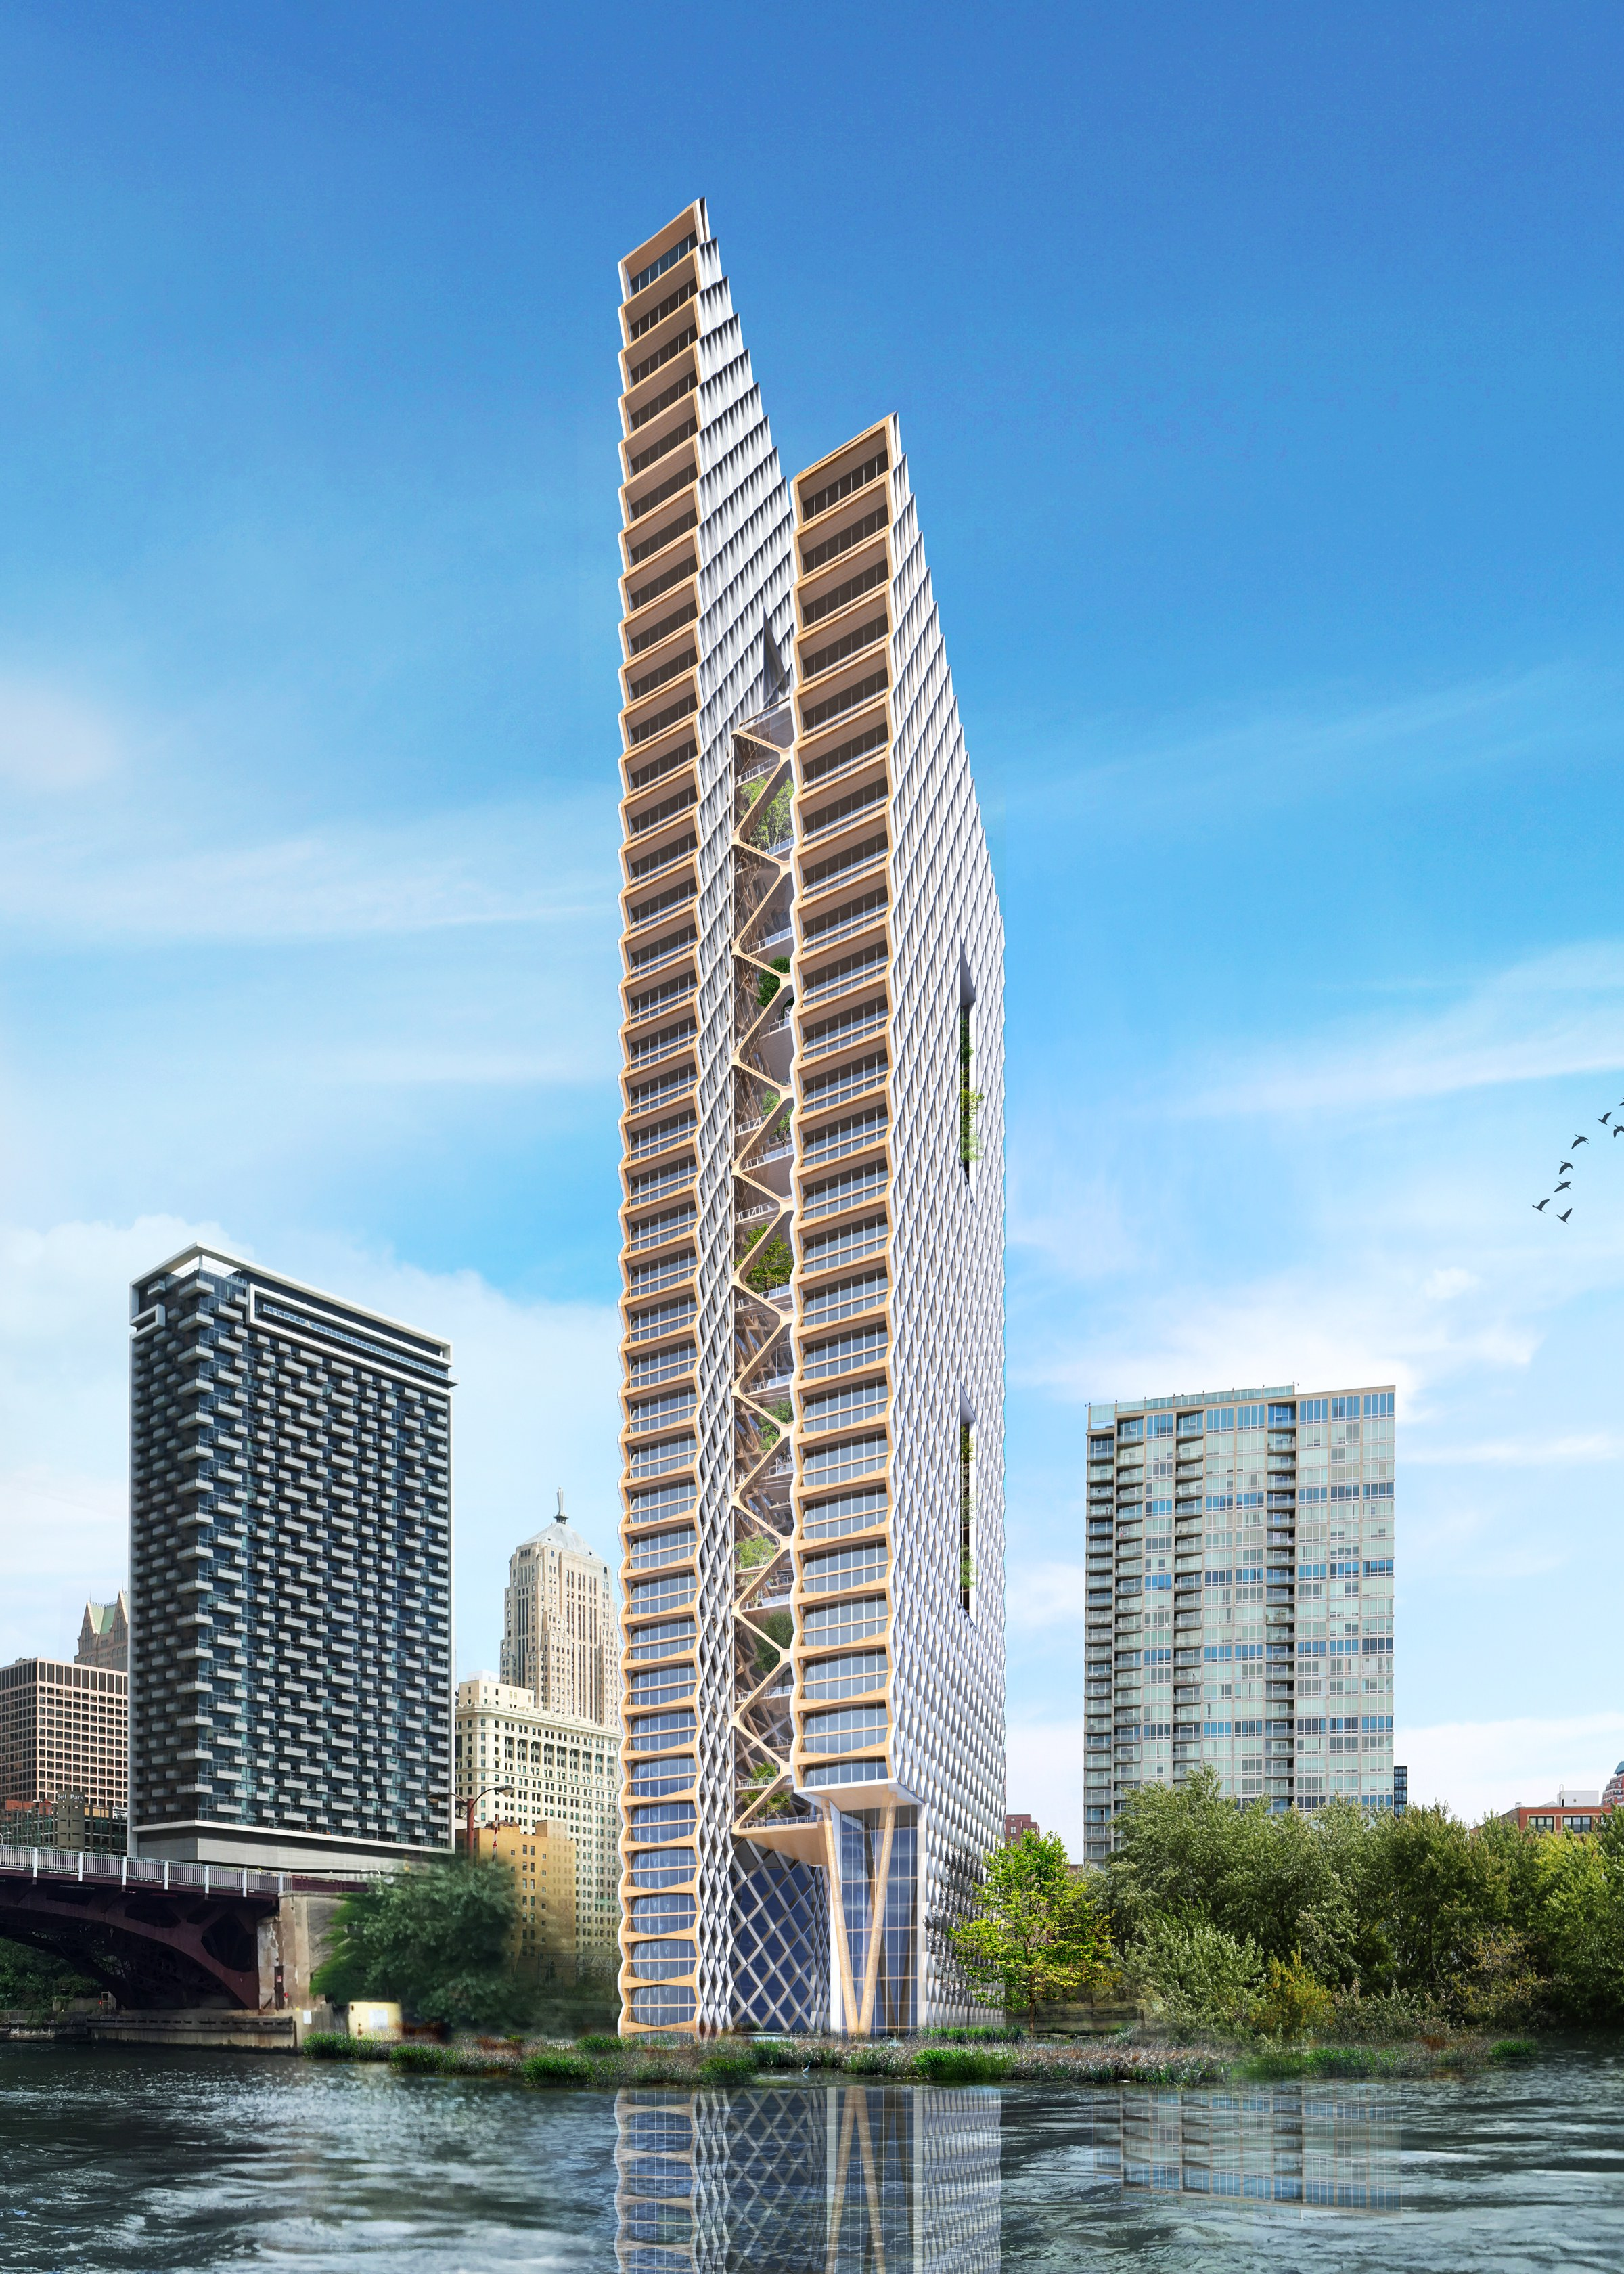 Skyscapers Made of Wood?